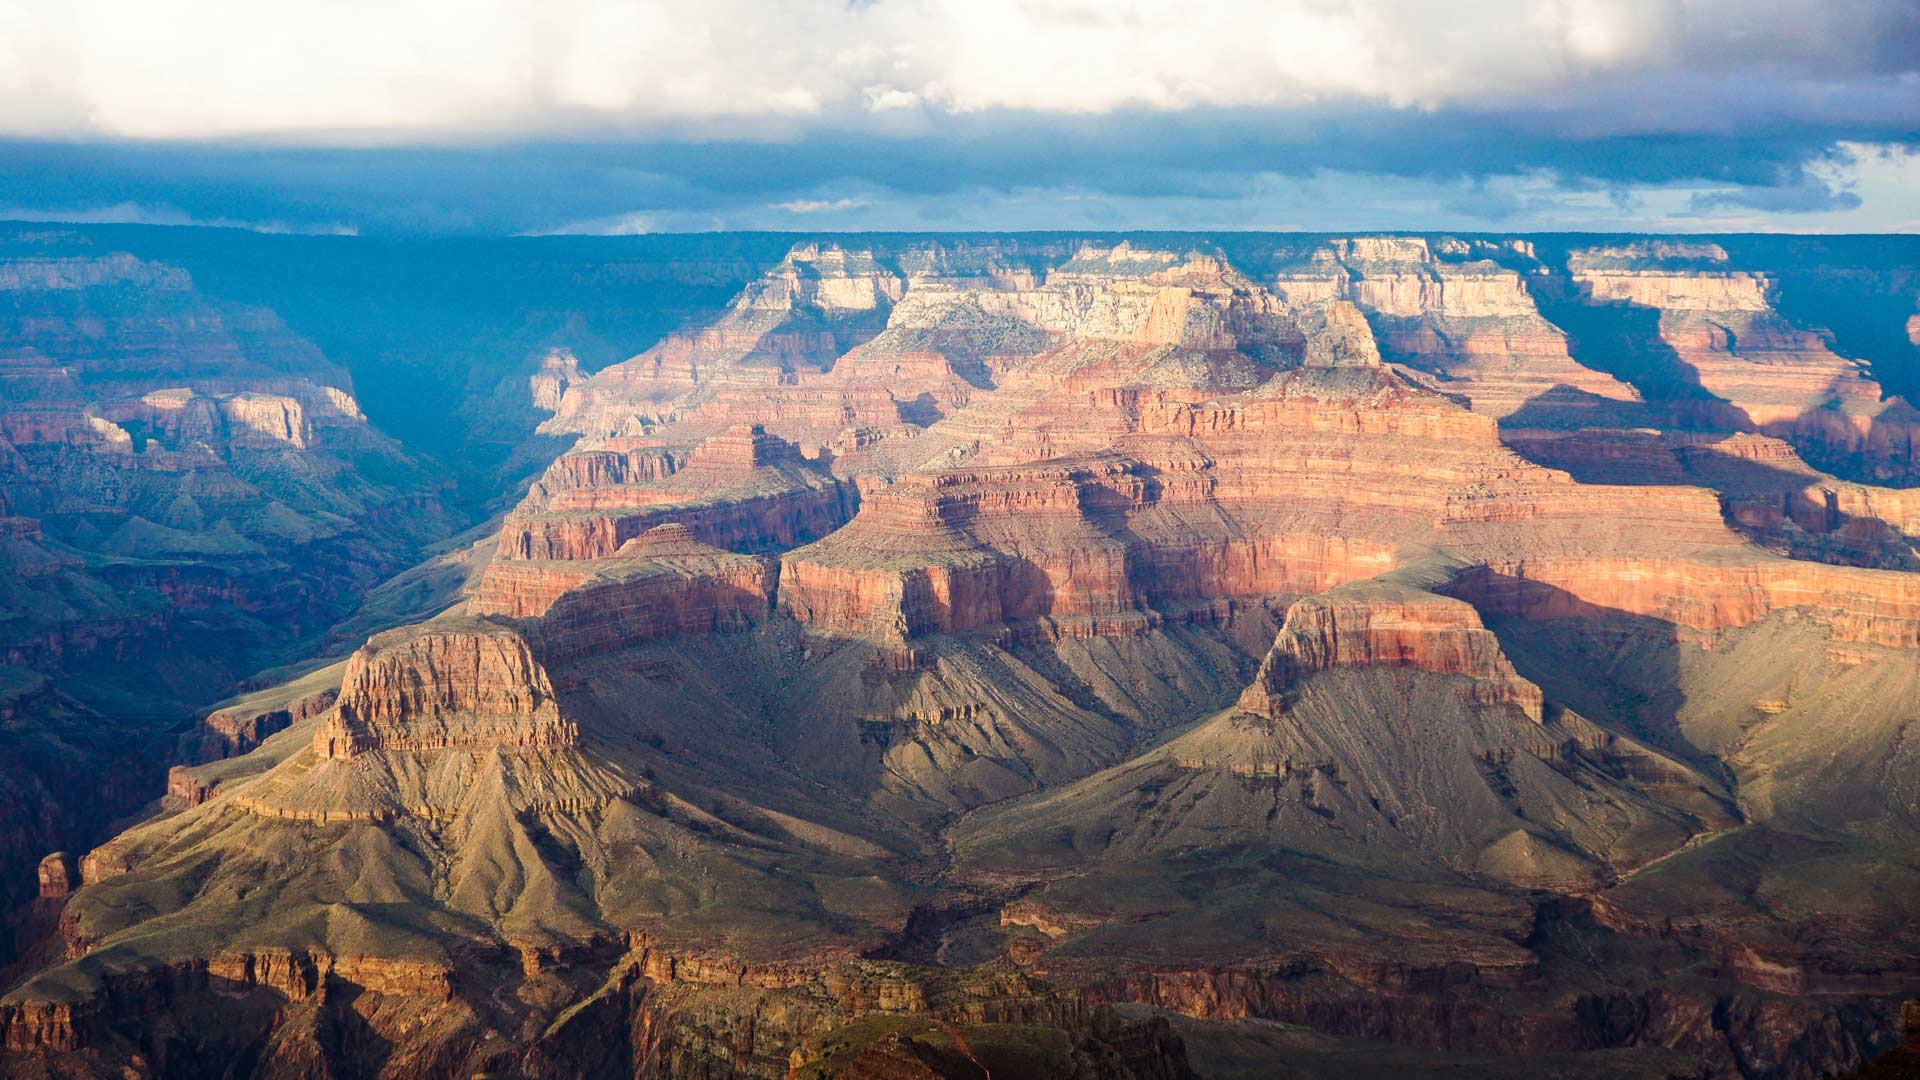 The Grand Canyon in northern Arizona.